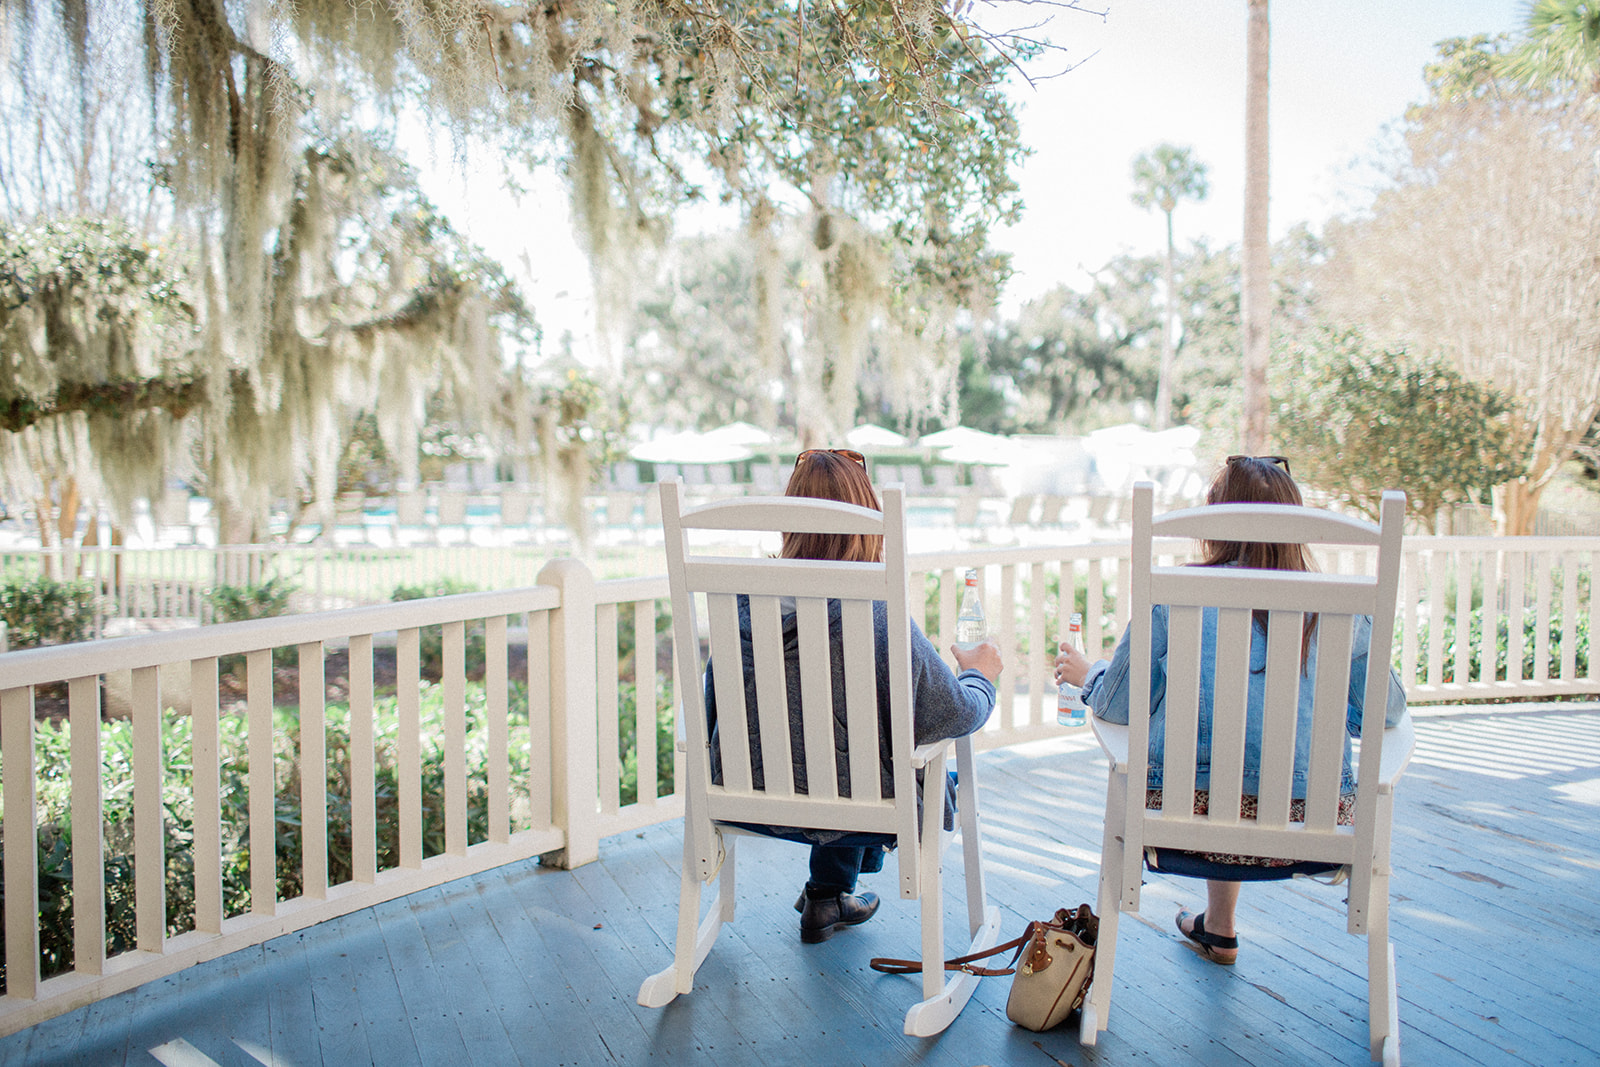 Jekyll Island Club by Caitlin Lee